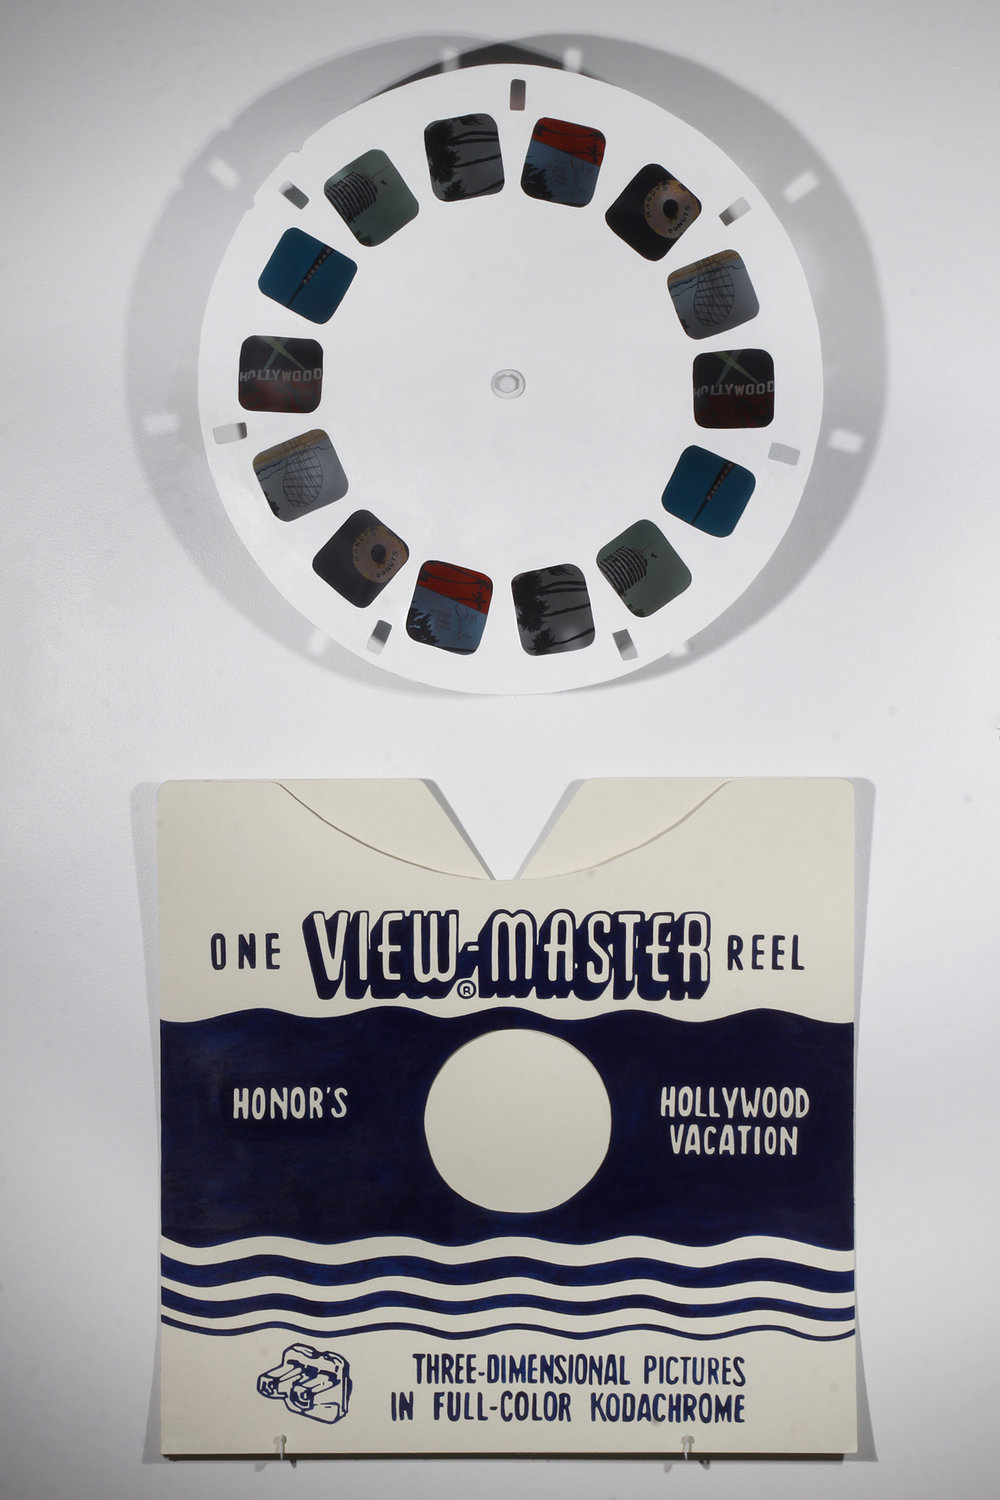 Viewmaster Reel #1 (Hollywood Vacation)